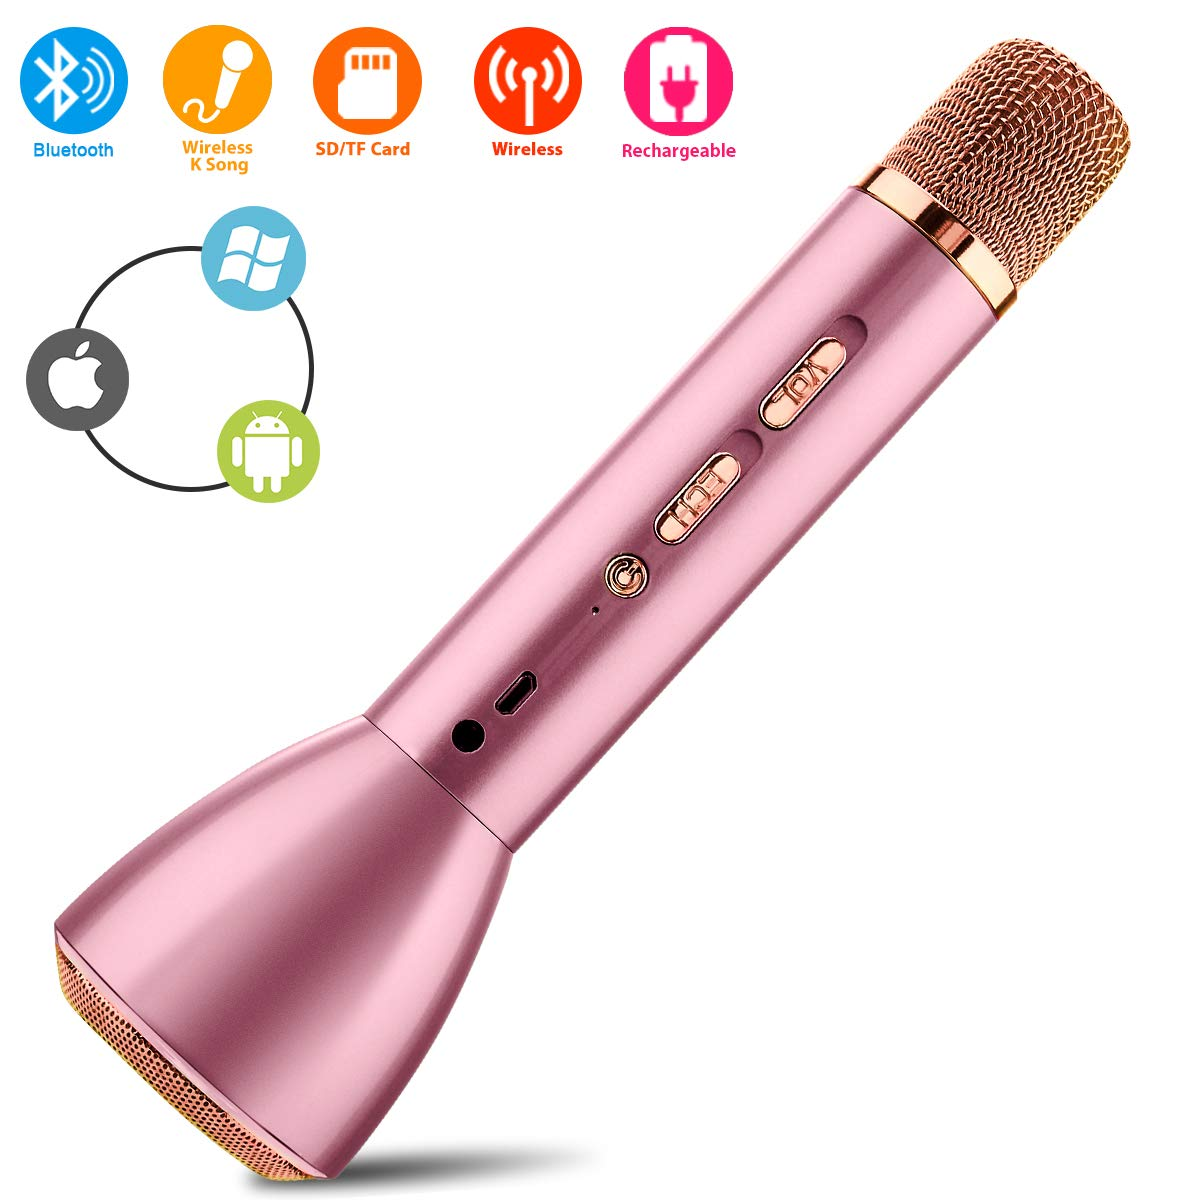 Wireless Bluetooth Karaoke Microphone for Kids Home Party Speaker Music Recorder by Epicing